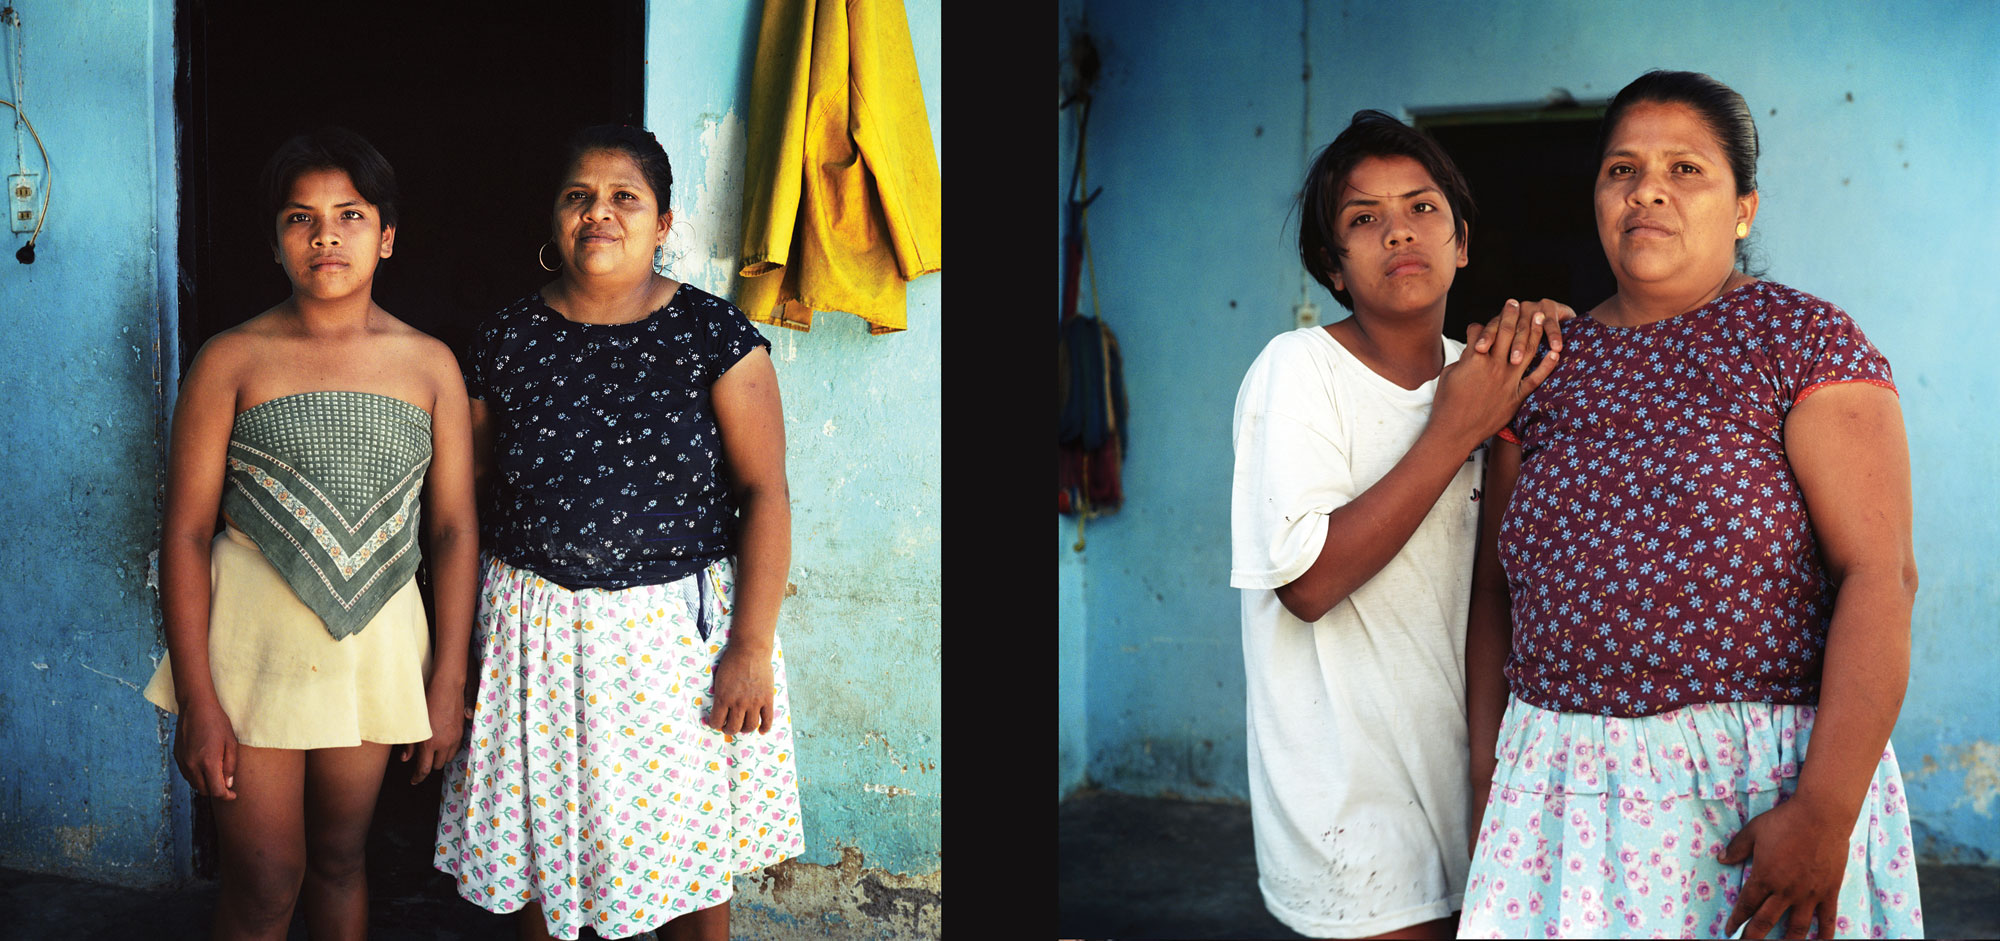 13 years old Bidal Aquino Guerra, stands with his mother Anatonia Guerra Aquino at the door in front of his house. At the age 13 Bidal switches from men to women's clothe constantly.